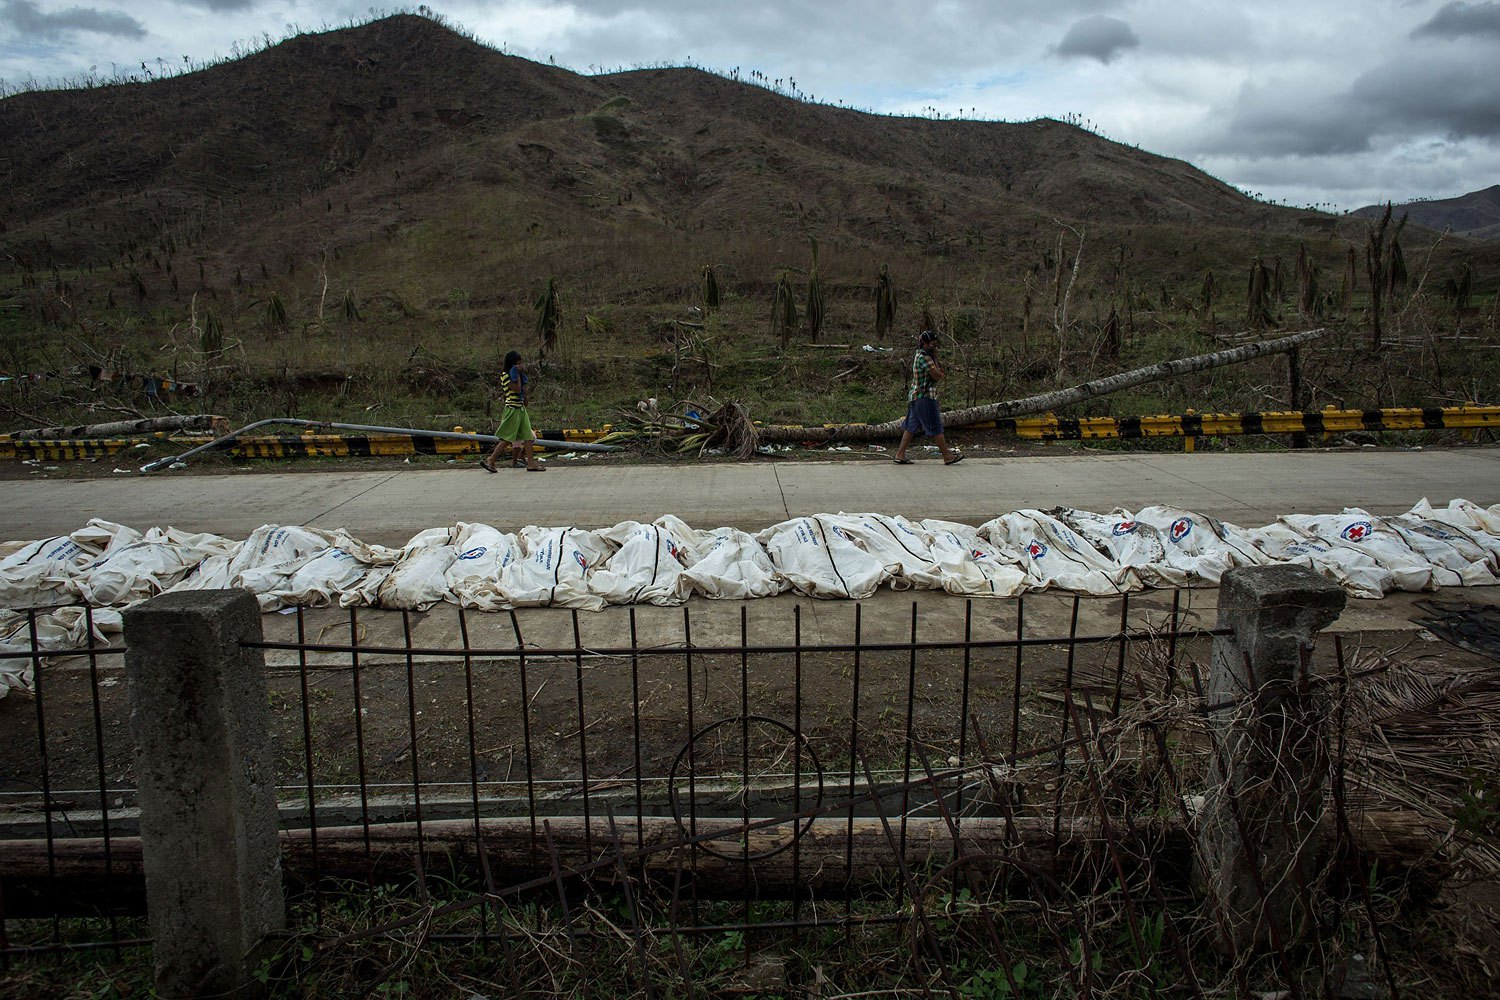 Bodies are seen on a road before being placed in a mass grave on the outskirts of Tacloban City on November 20, 2013 in Leyte, Philippines.